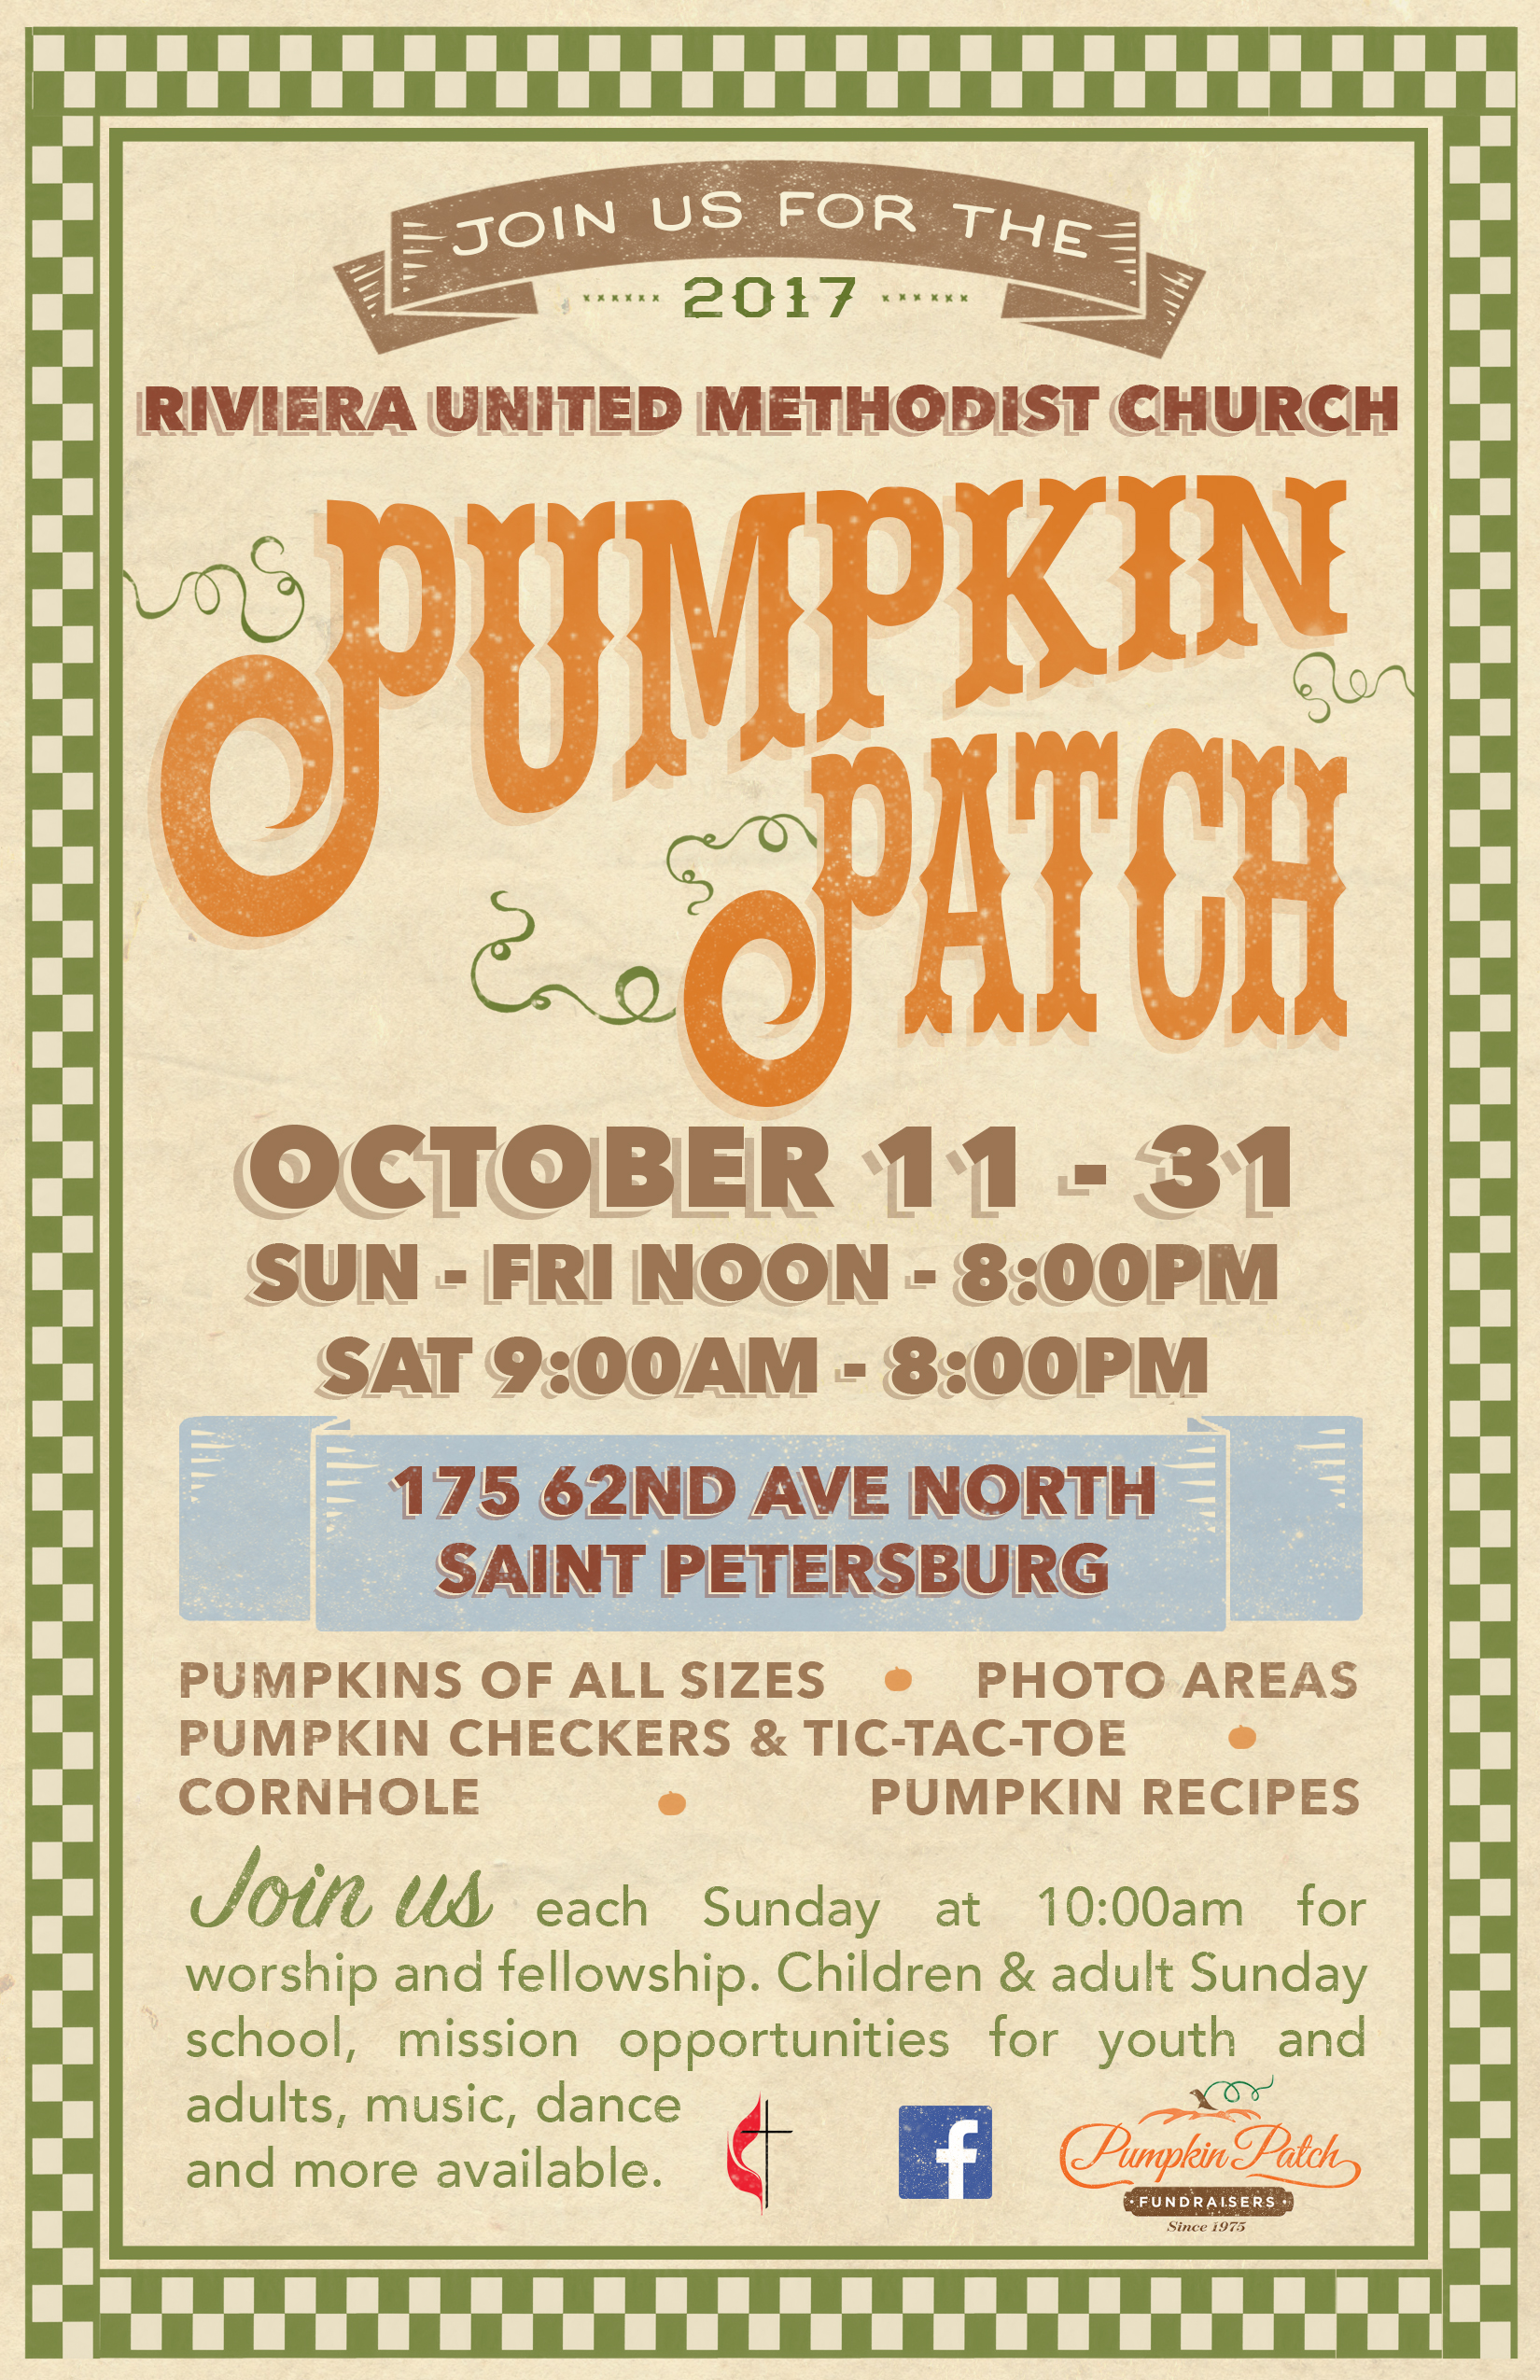 patch-insert.jpg